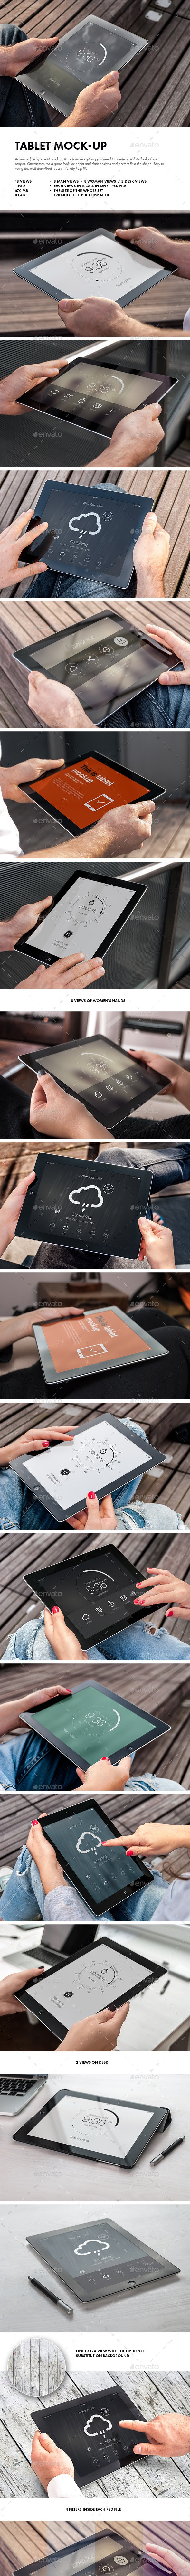 Tablet Mock-up - Mobile Displays